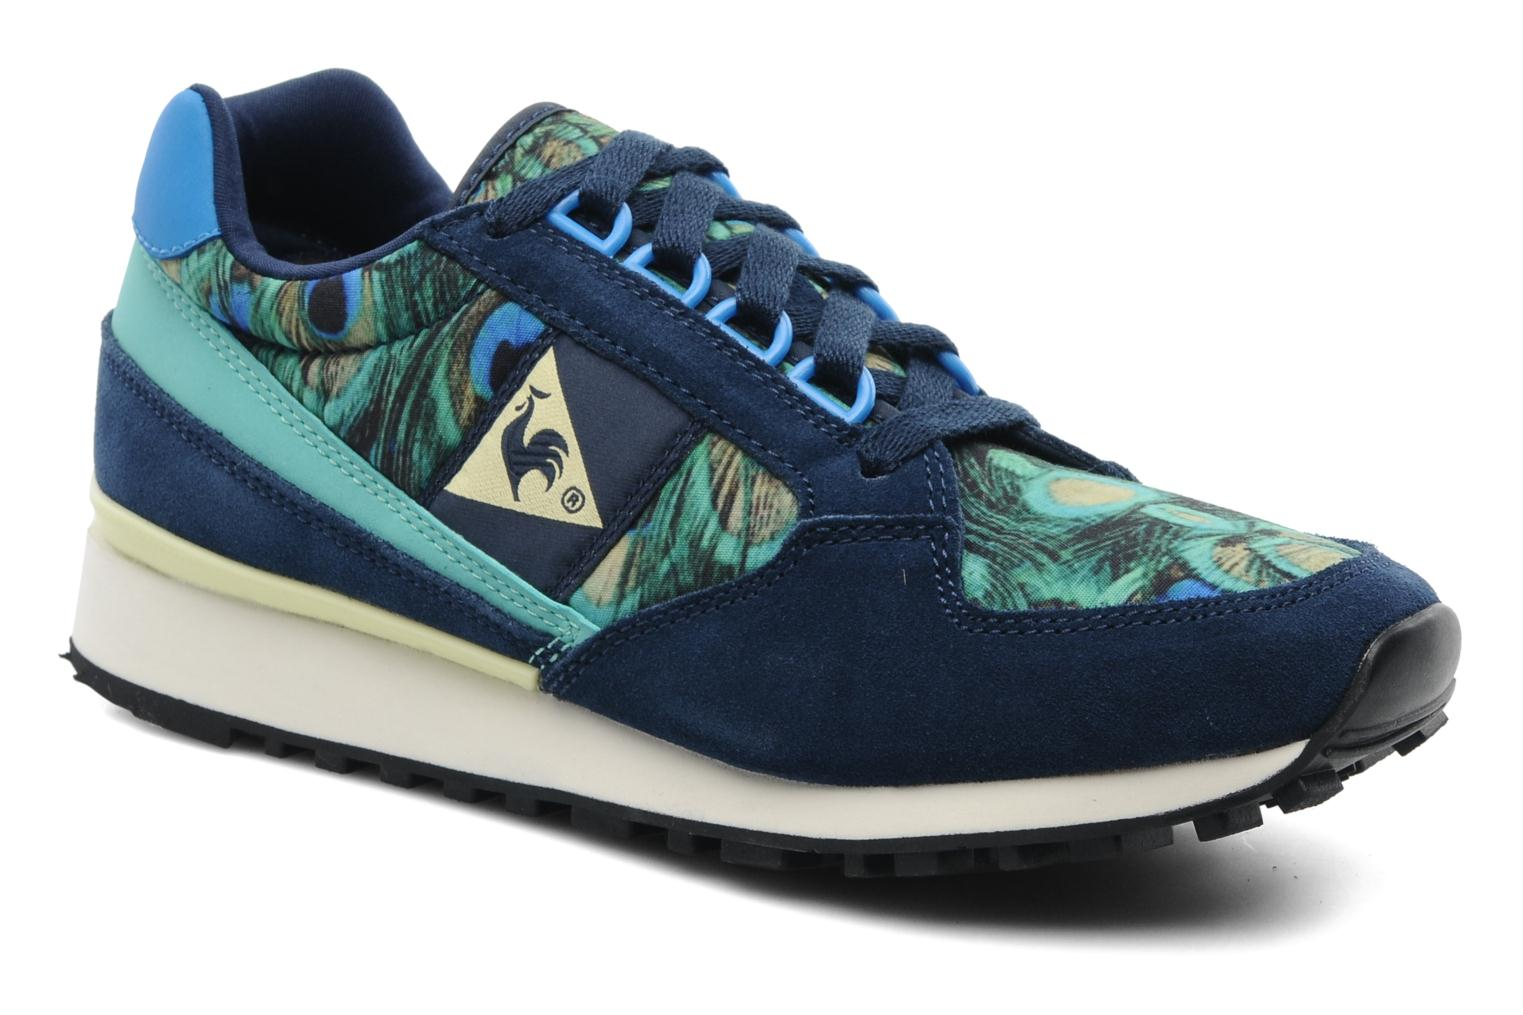 le coq sportif eclat w peacock trainers in multicolor at 190375. Black Bedroom Furniture Sets. Home Design Ideas